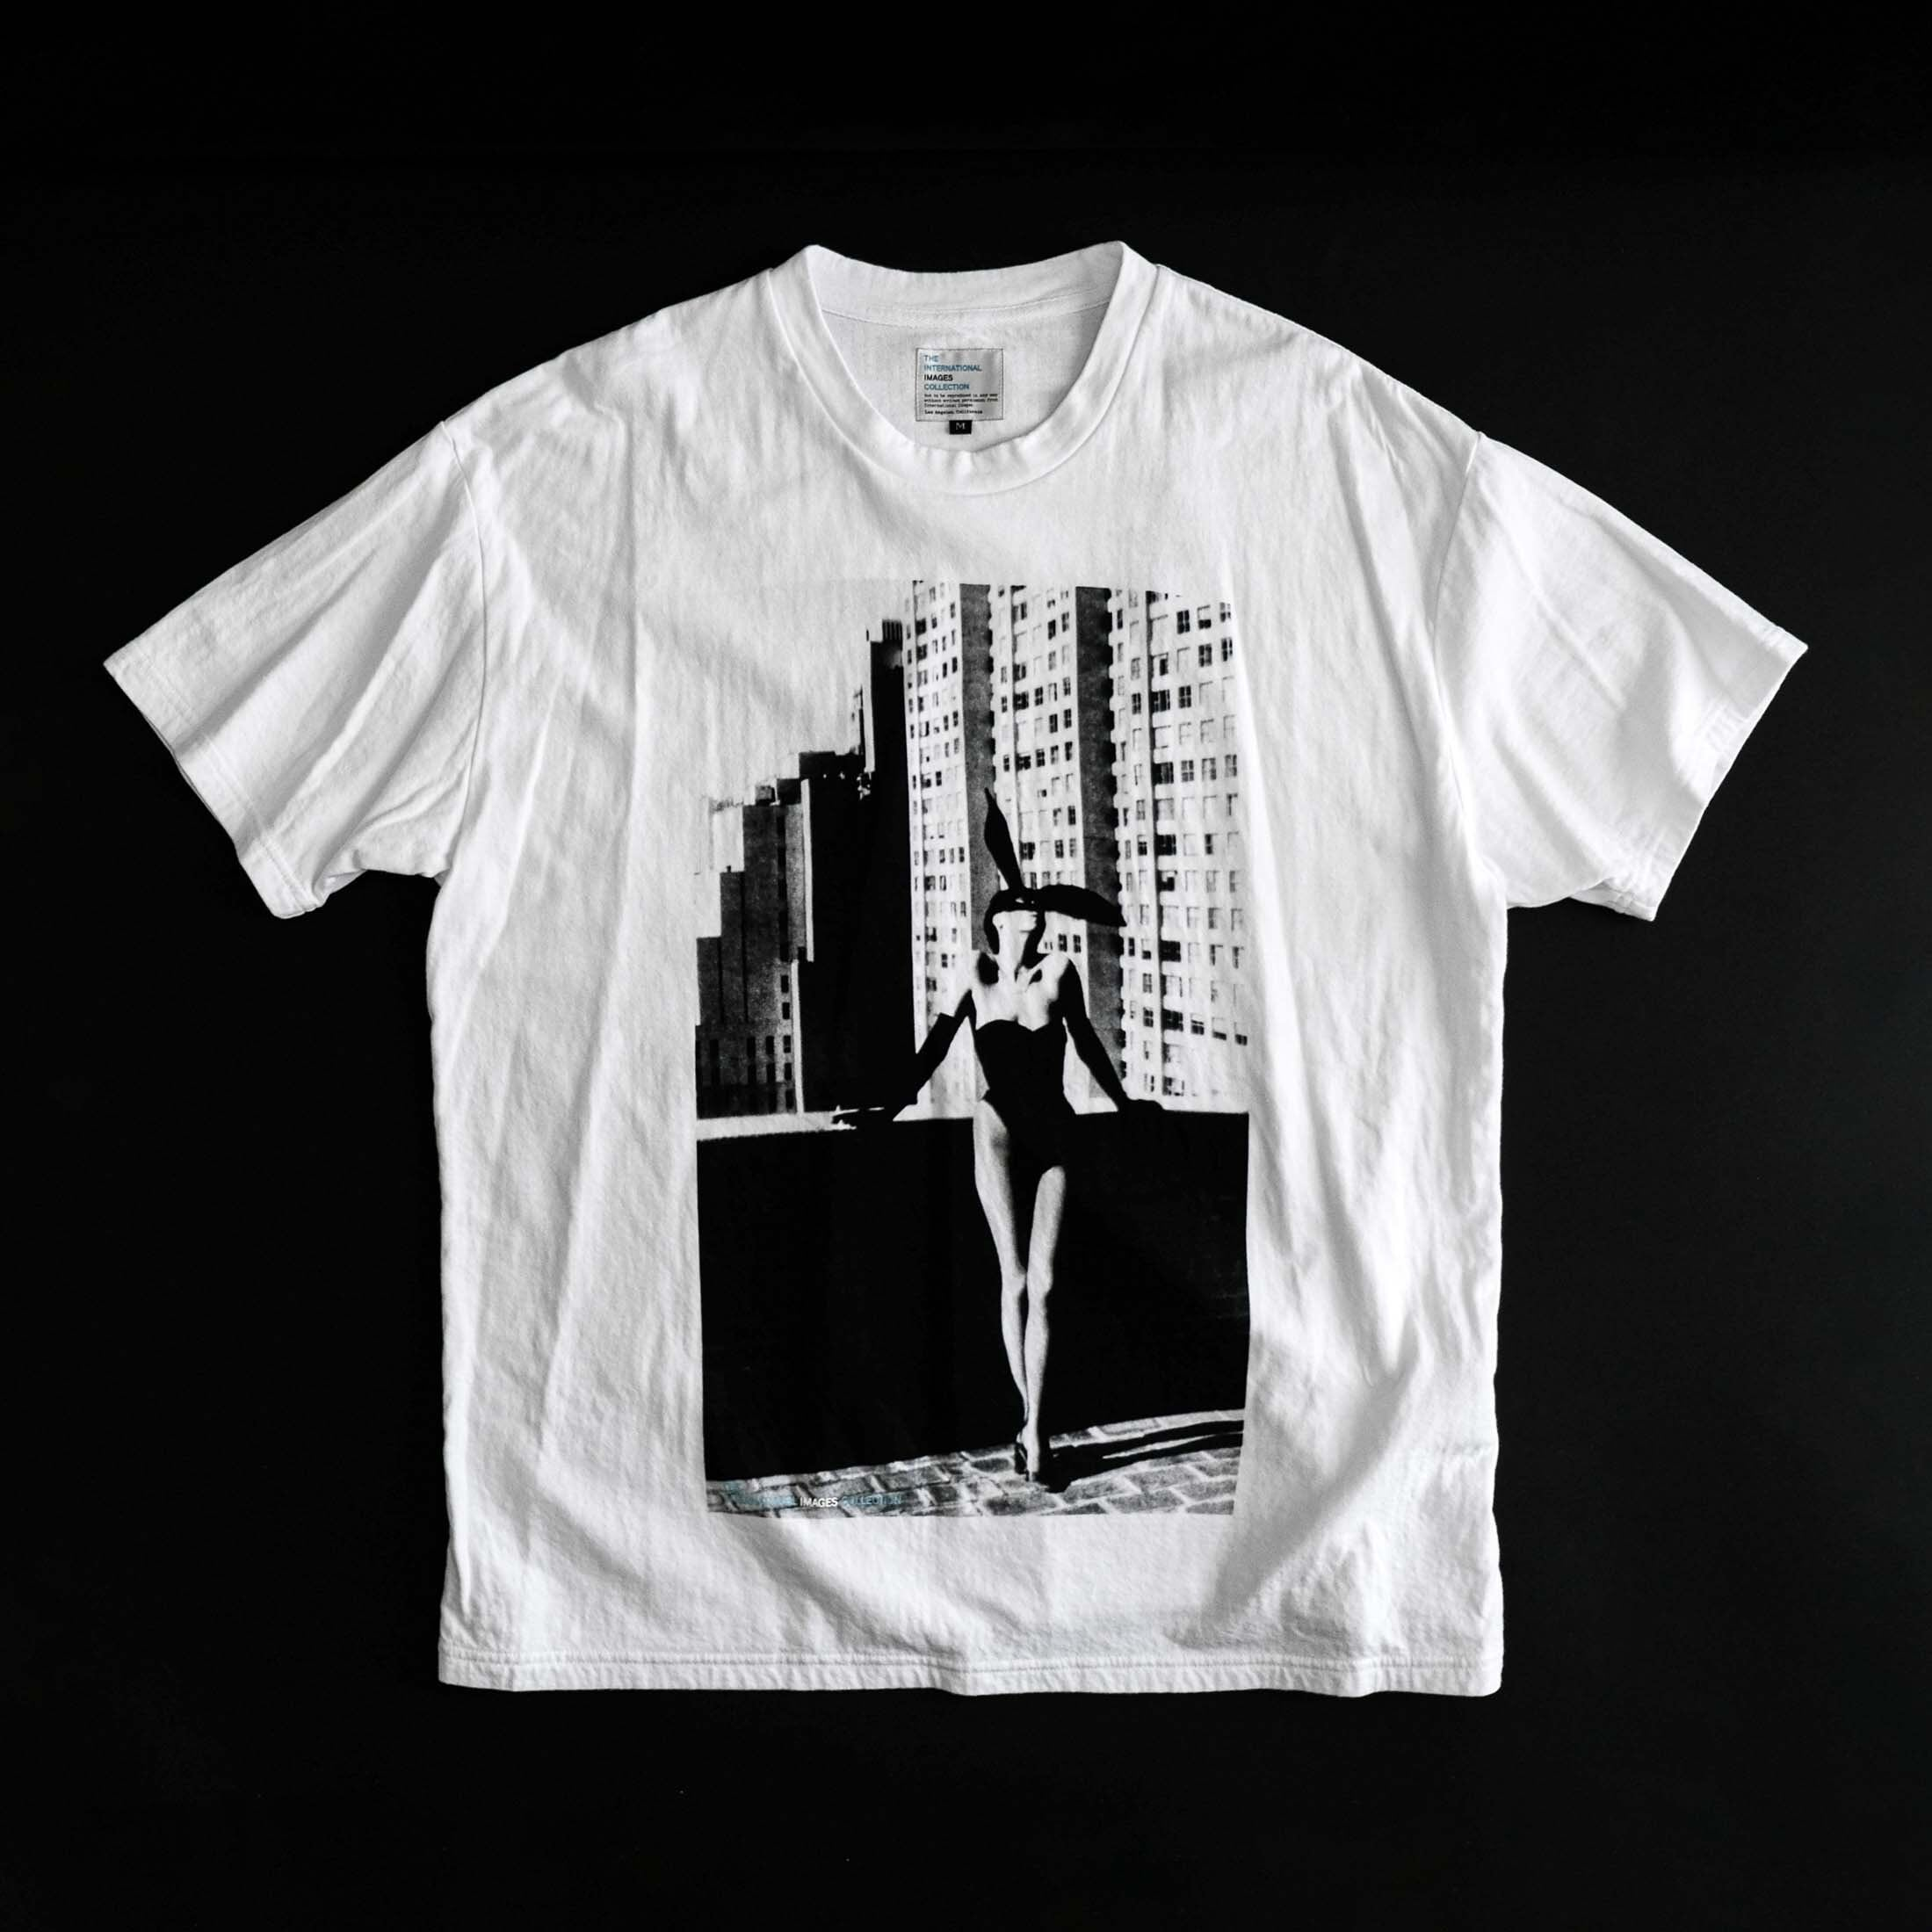 THE INTERNATIONAL IMAGES COLLECTION / GRAPHIC T-SHIRT (PLAYBOY BUNNY)